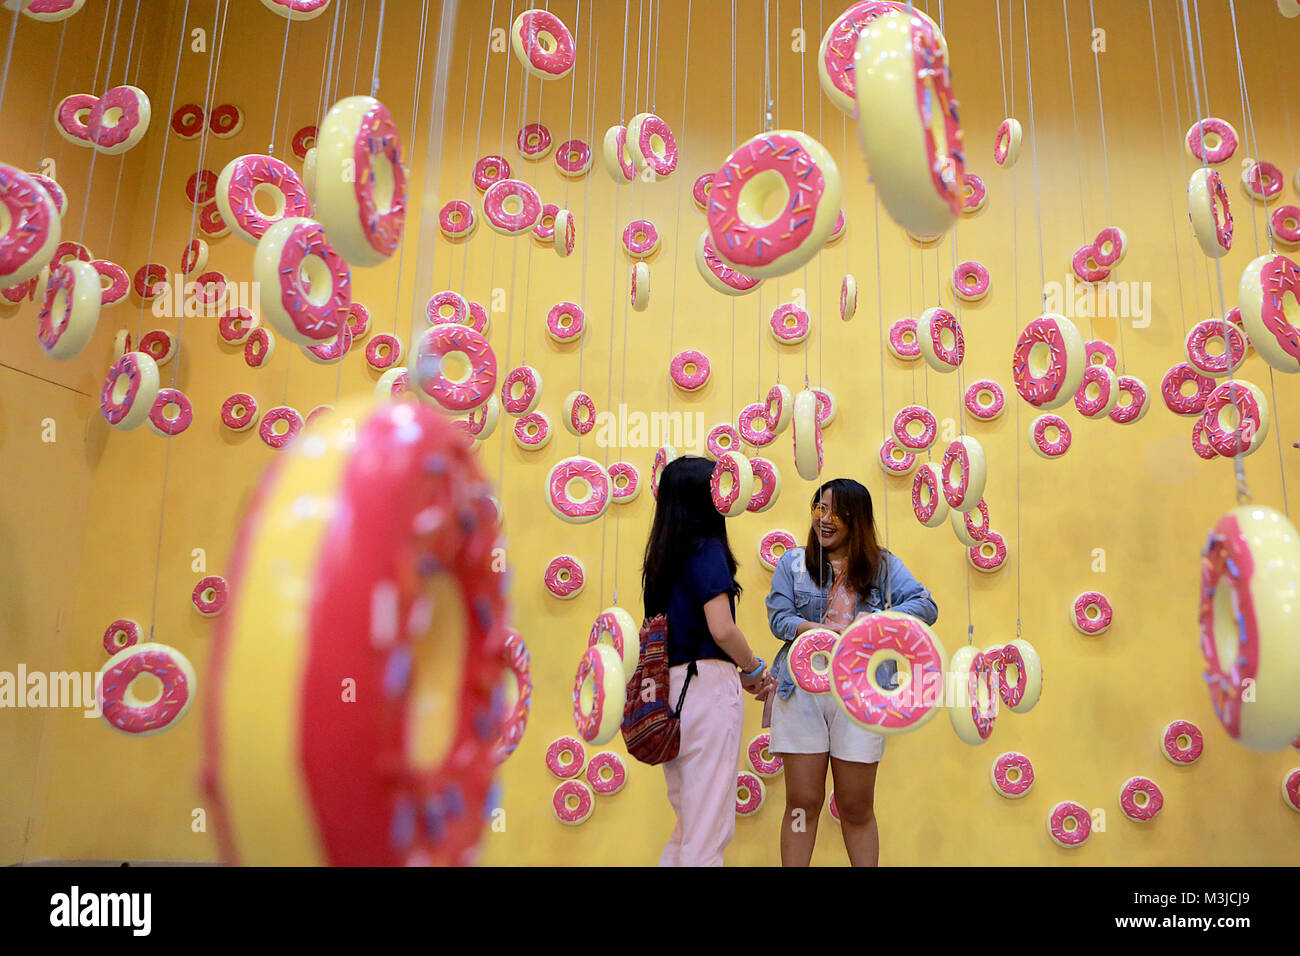 Pasay City, Philippines. 11th Feb, 2018. People take a tour inside the Donut Room of the Dessert Museum in Pasay - Stock Image